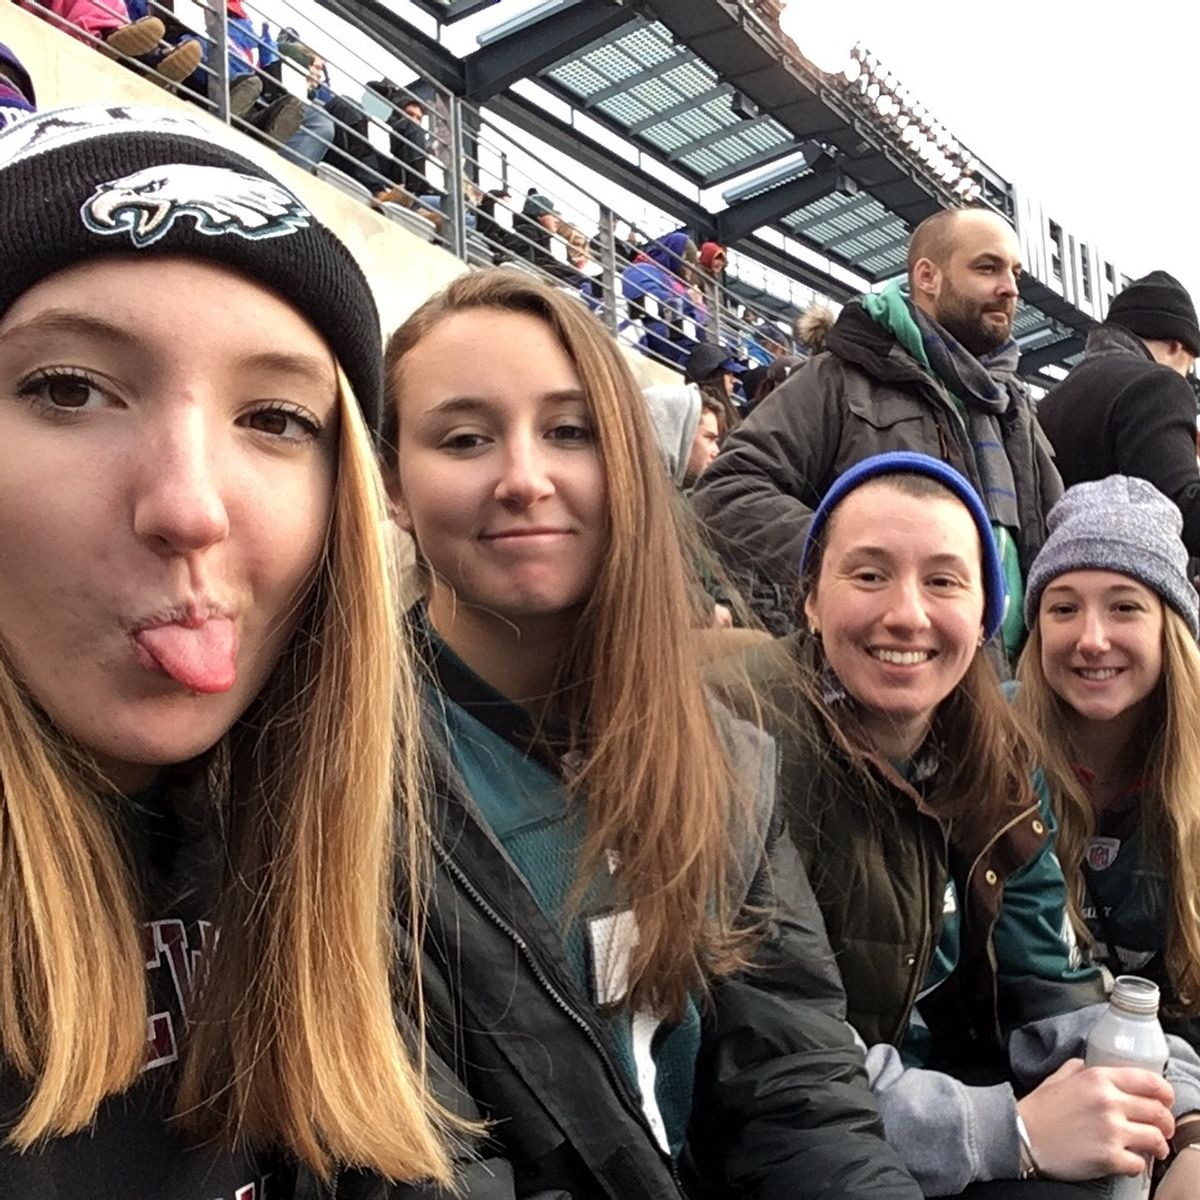 Eagles Vs. Patriots Through The Eyes Of An Outcast